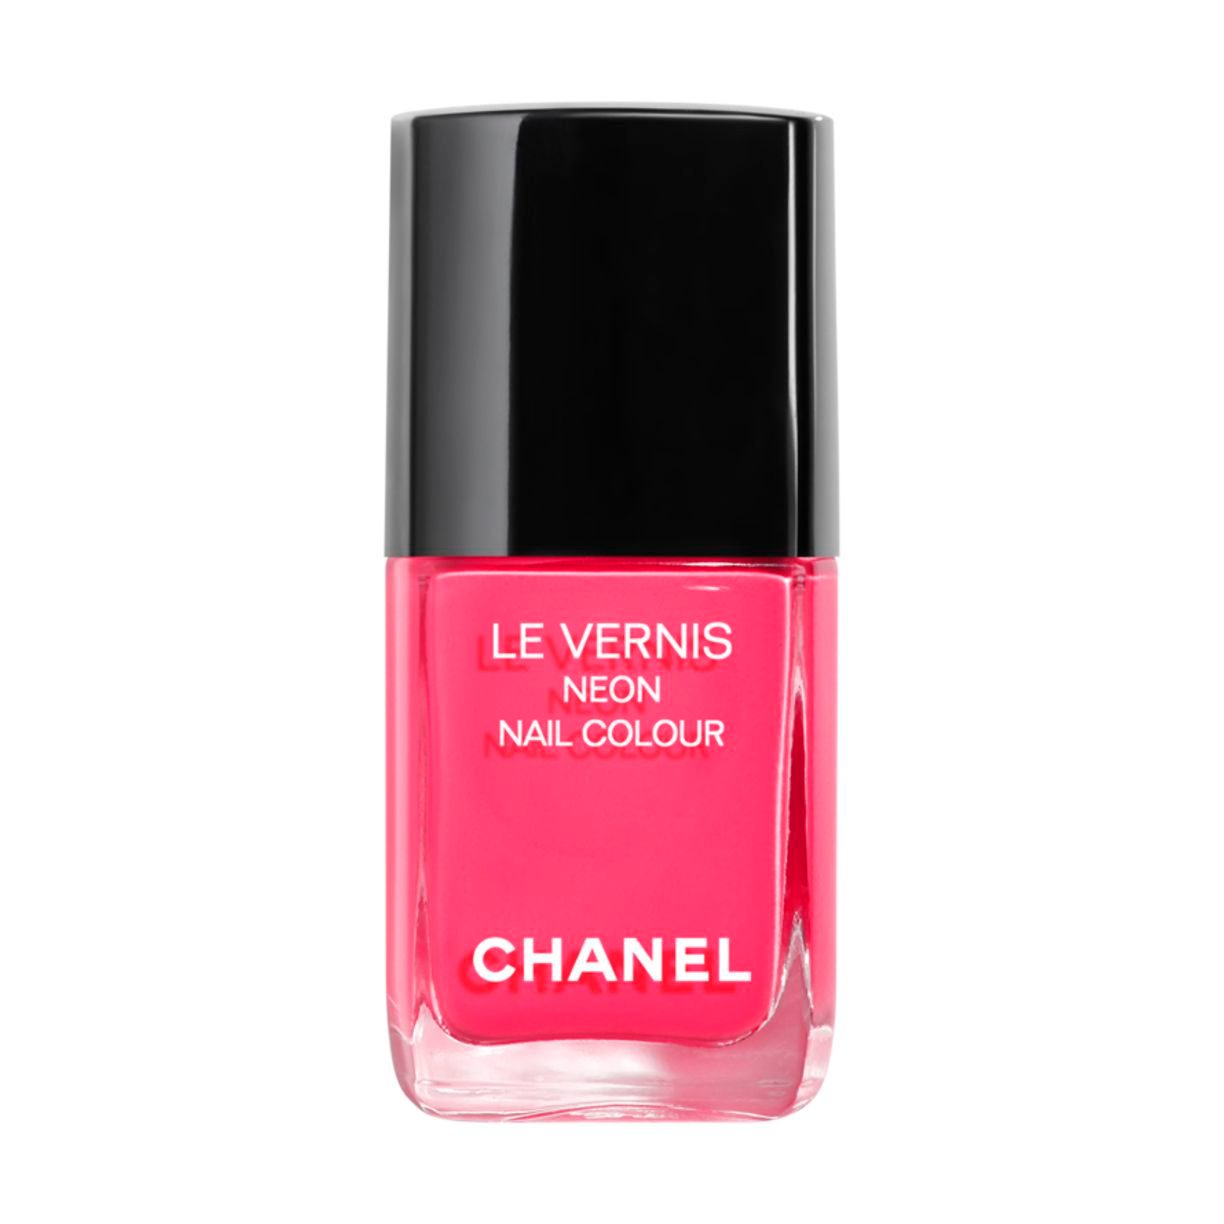 LE VERNIS NEON NAIL COLOUR 596 - ROSE NÉON